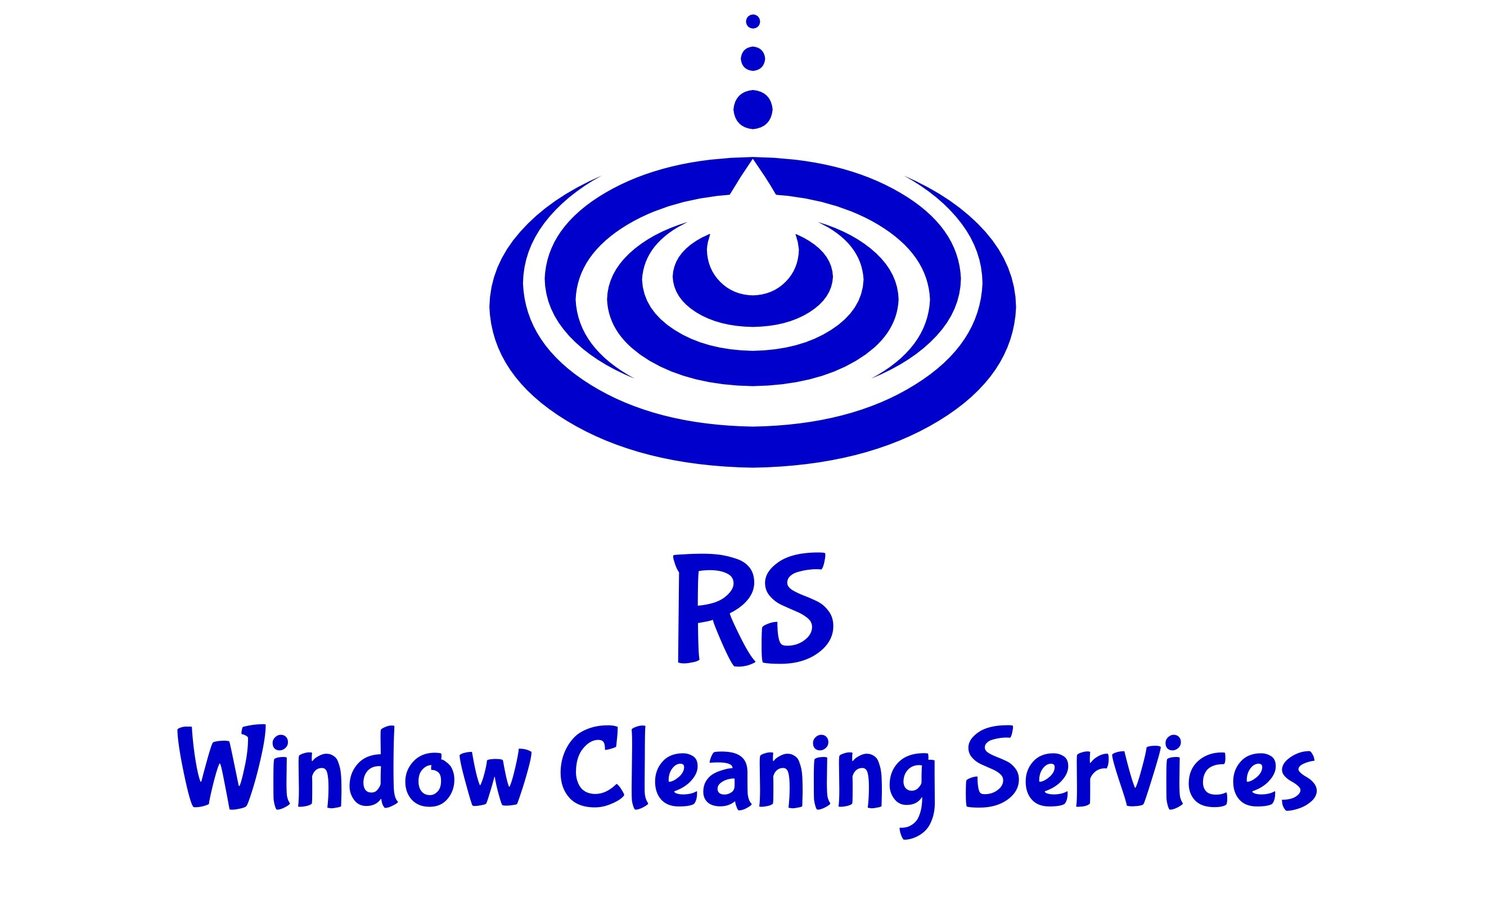 Window cleaning services rs window cleaning services buycottarizona Image collections